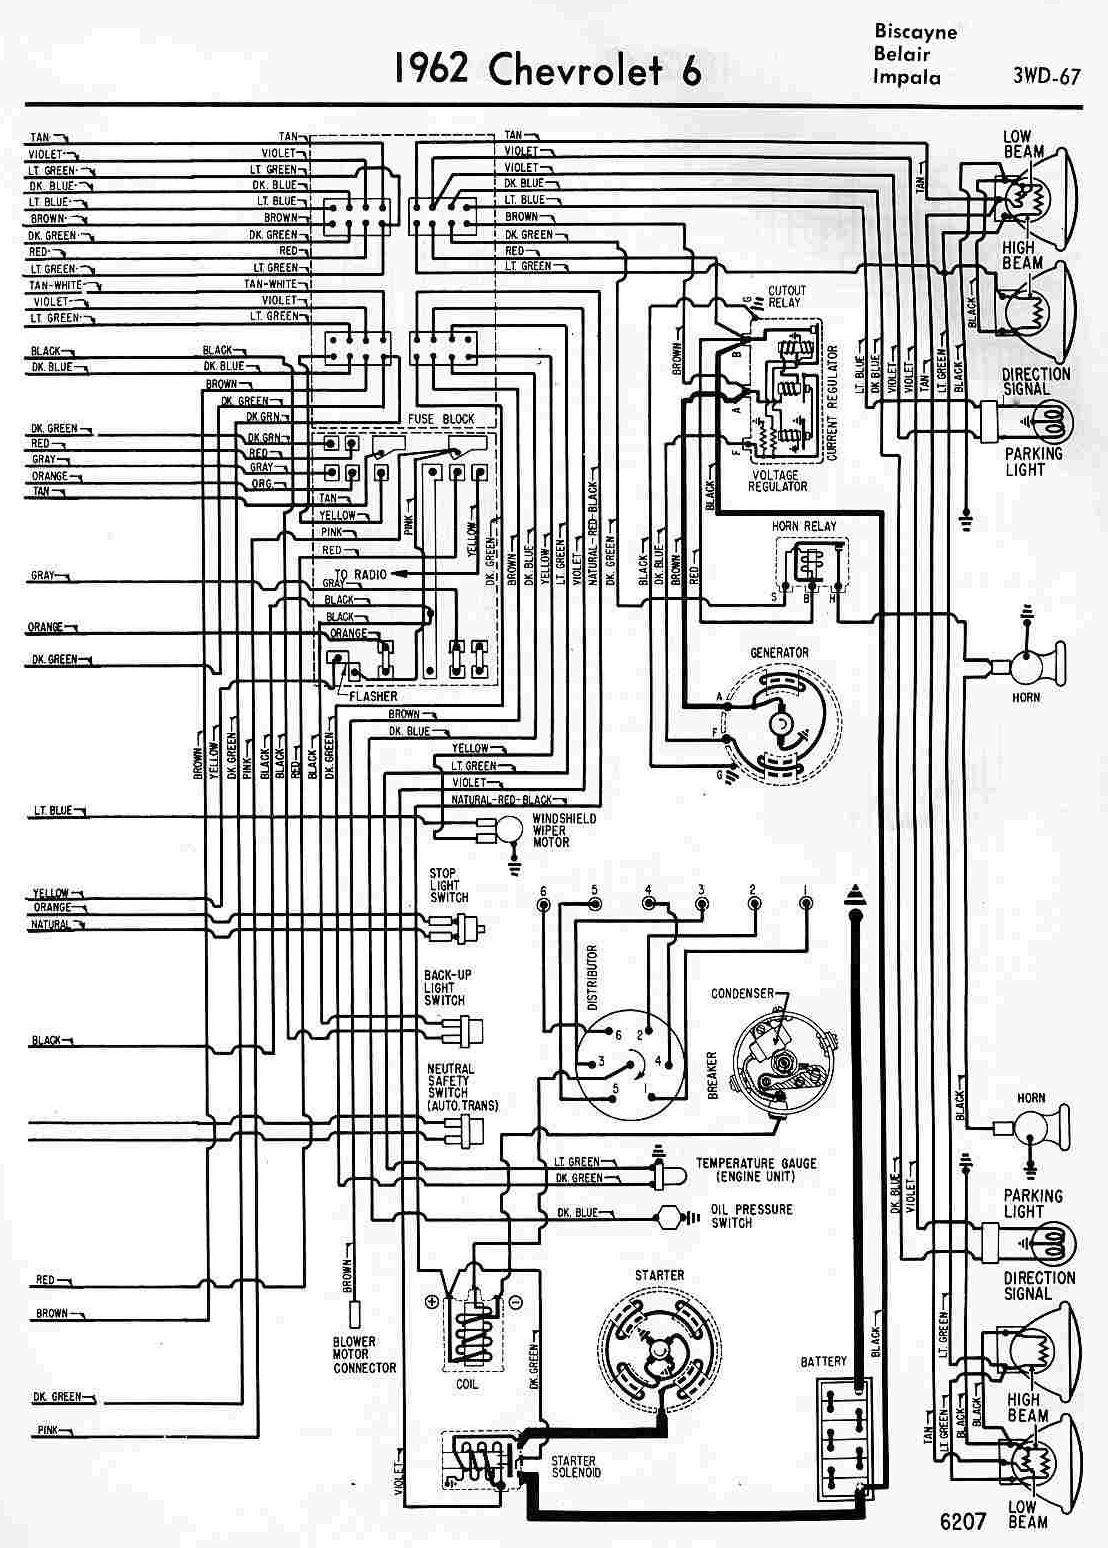 1962 chevrolet wiring diagram all wiring diagram 1961 Chevy Truck Wiring Diagram